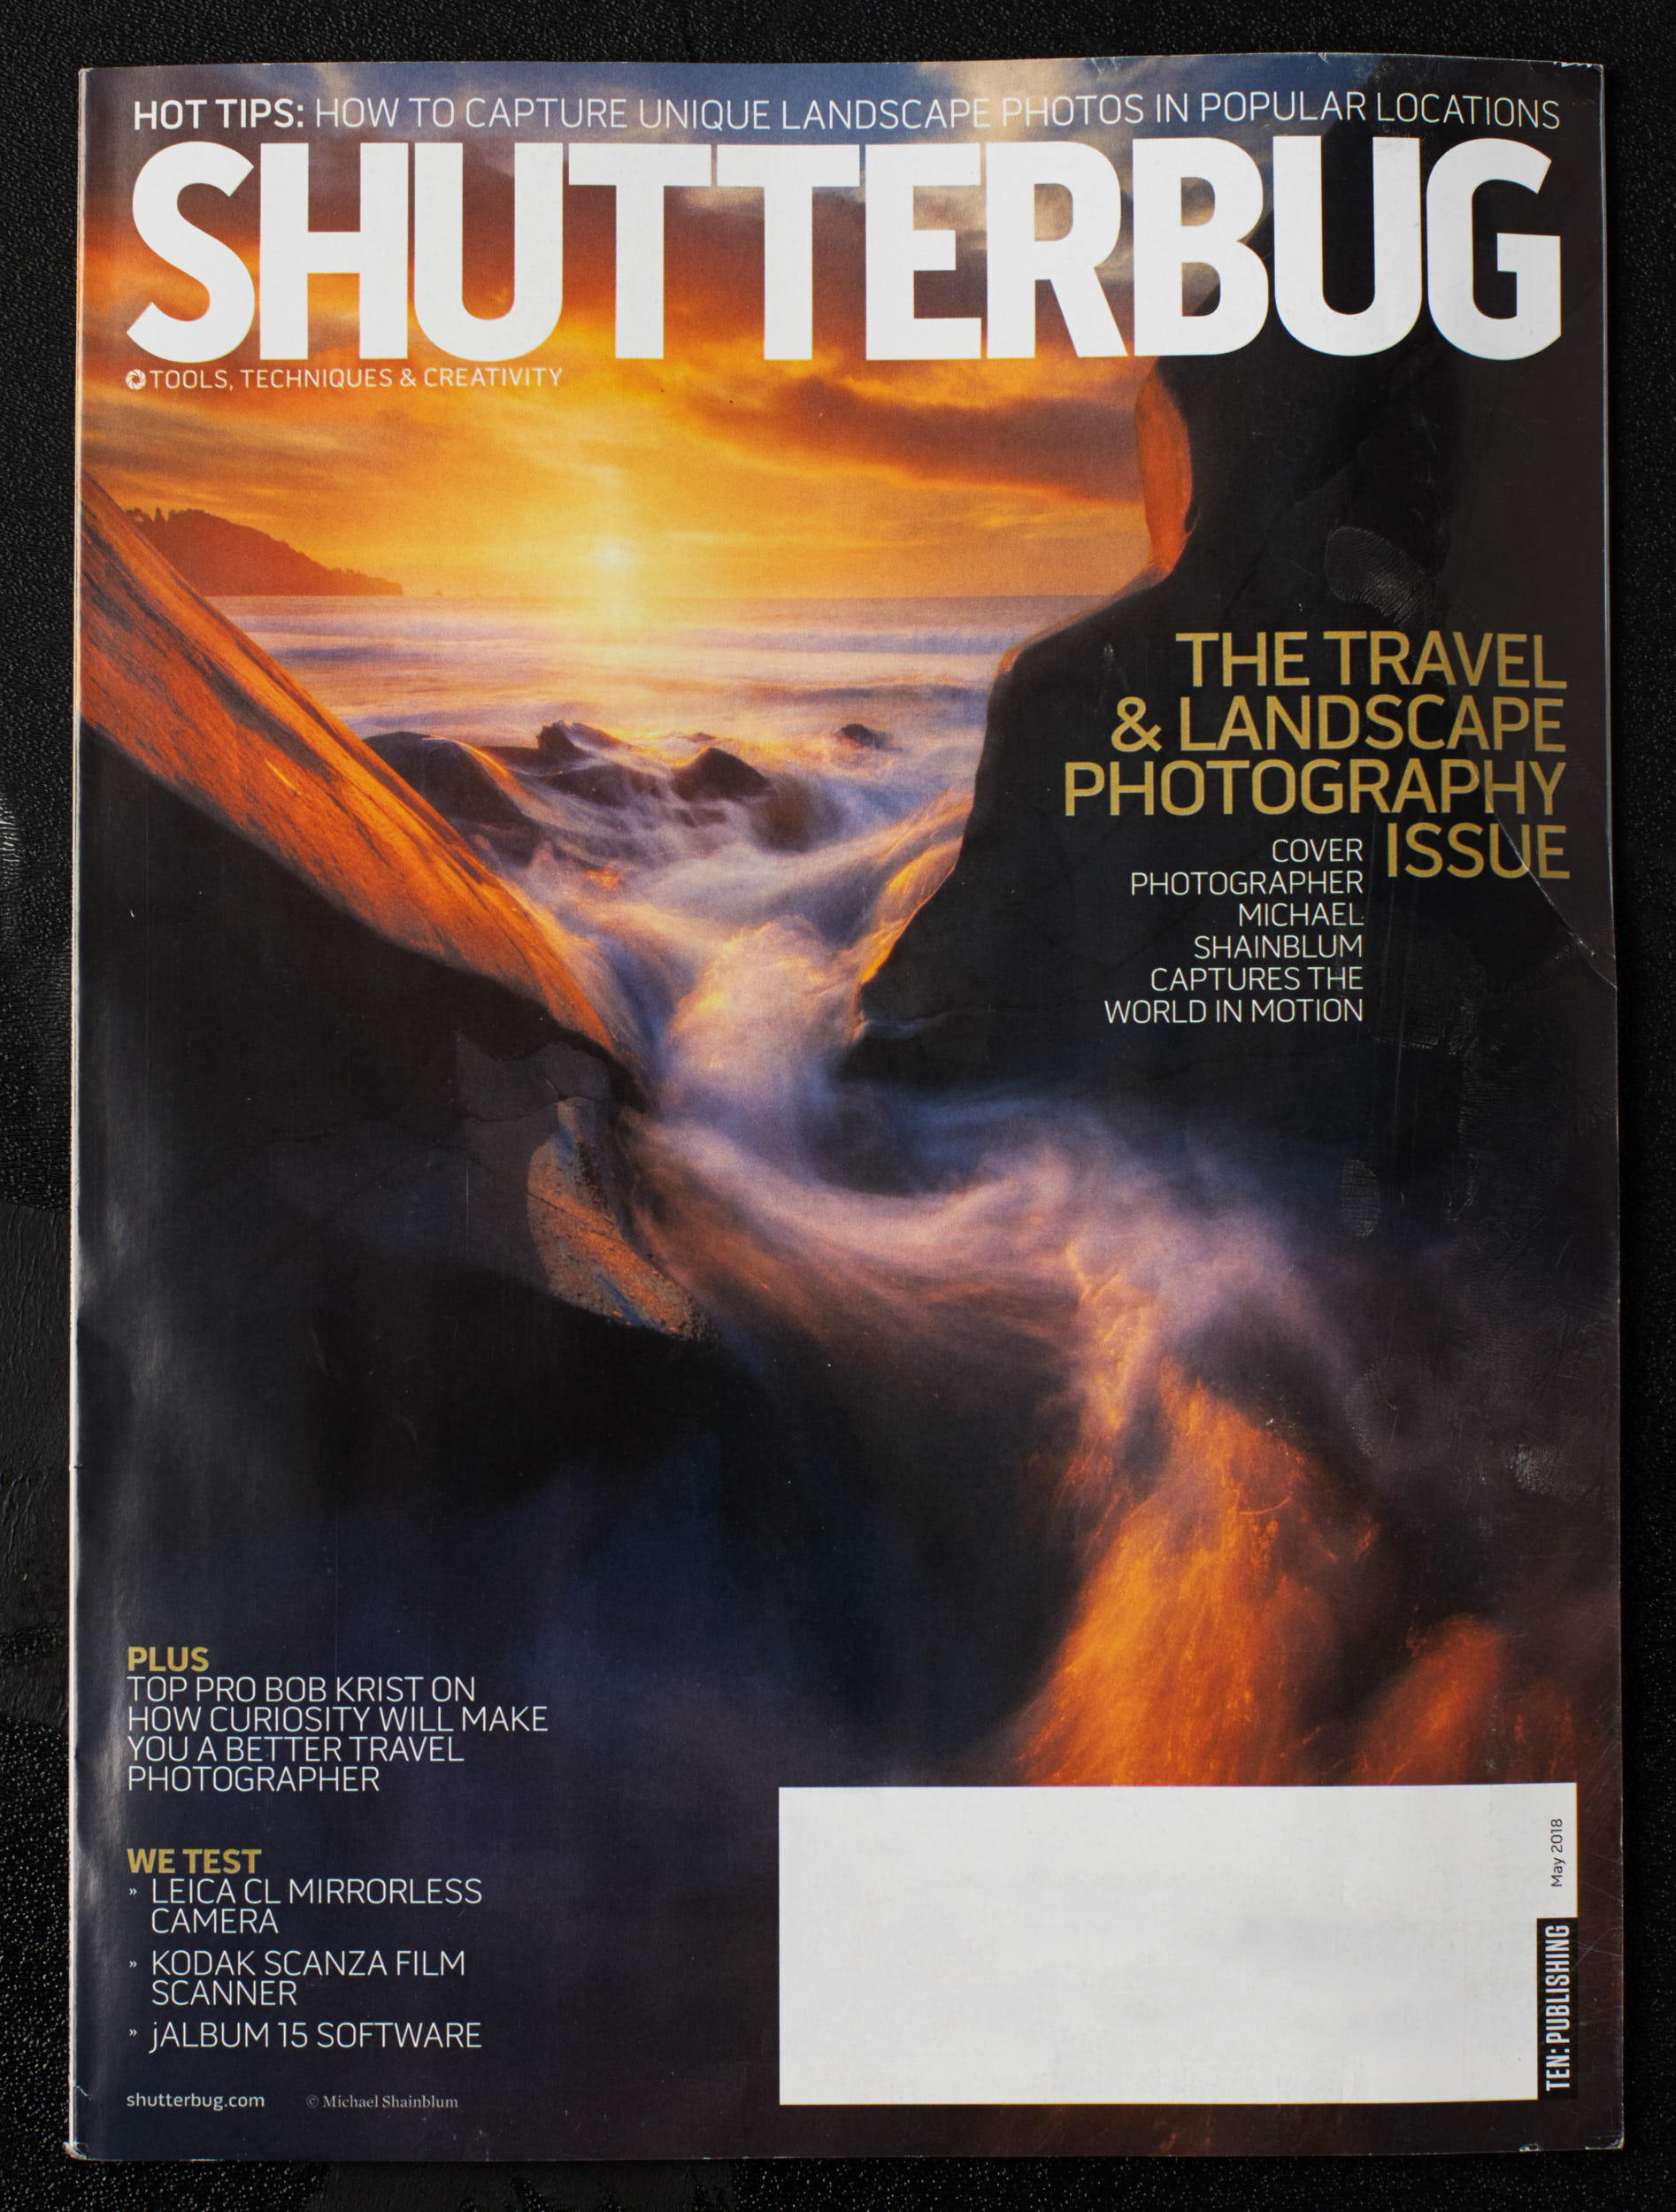 Paul C. Buff ad featuring photography from Paul Davis Photography in the May 2018 issue of Shutterbug magazine.